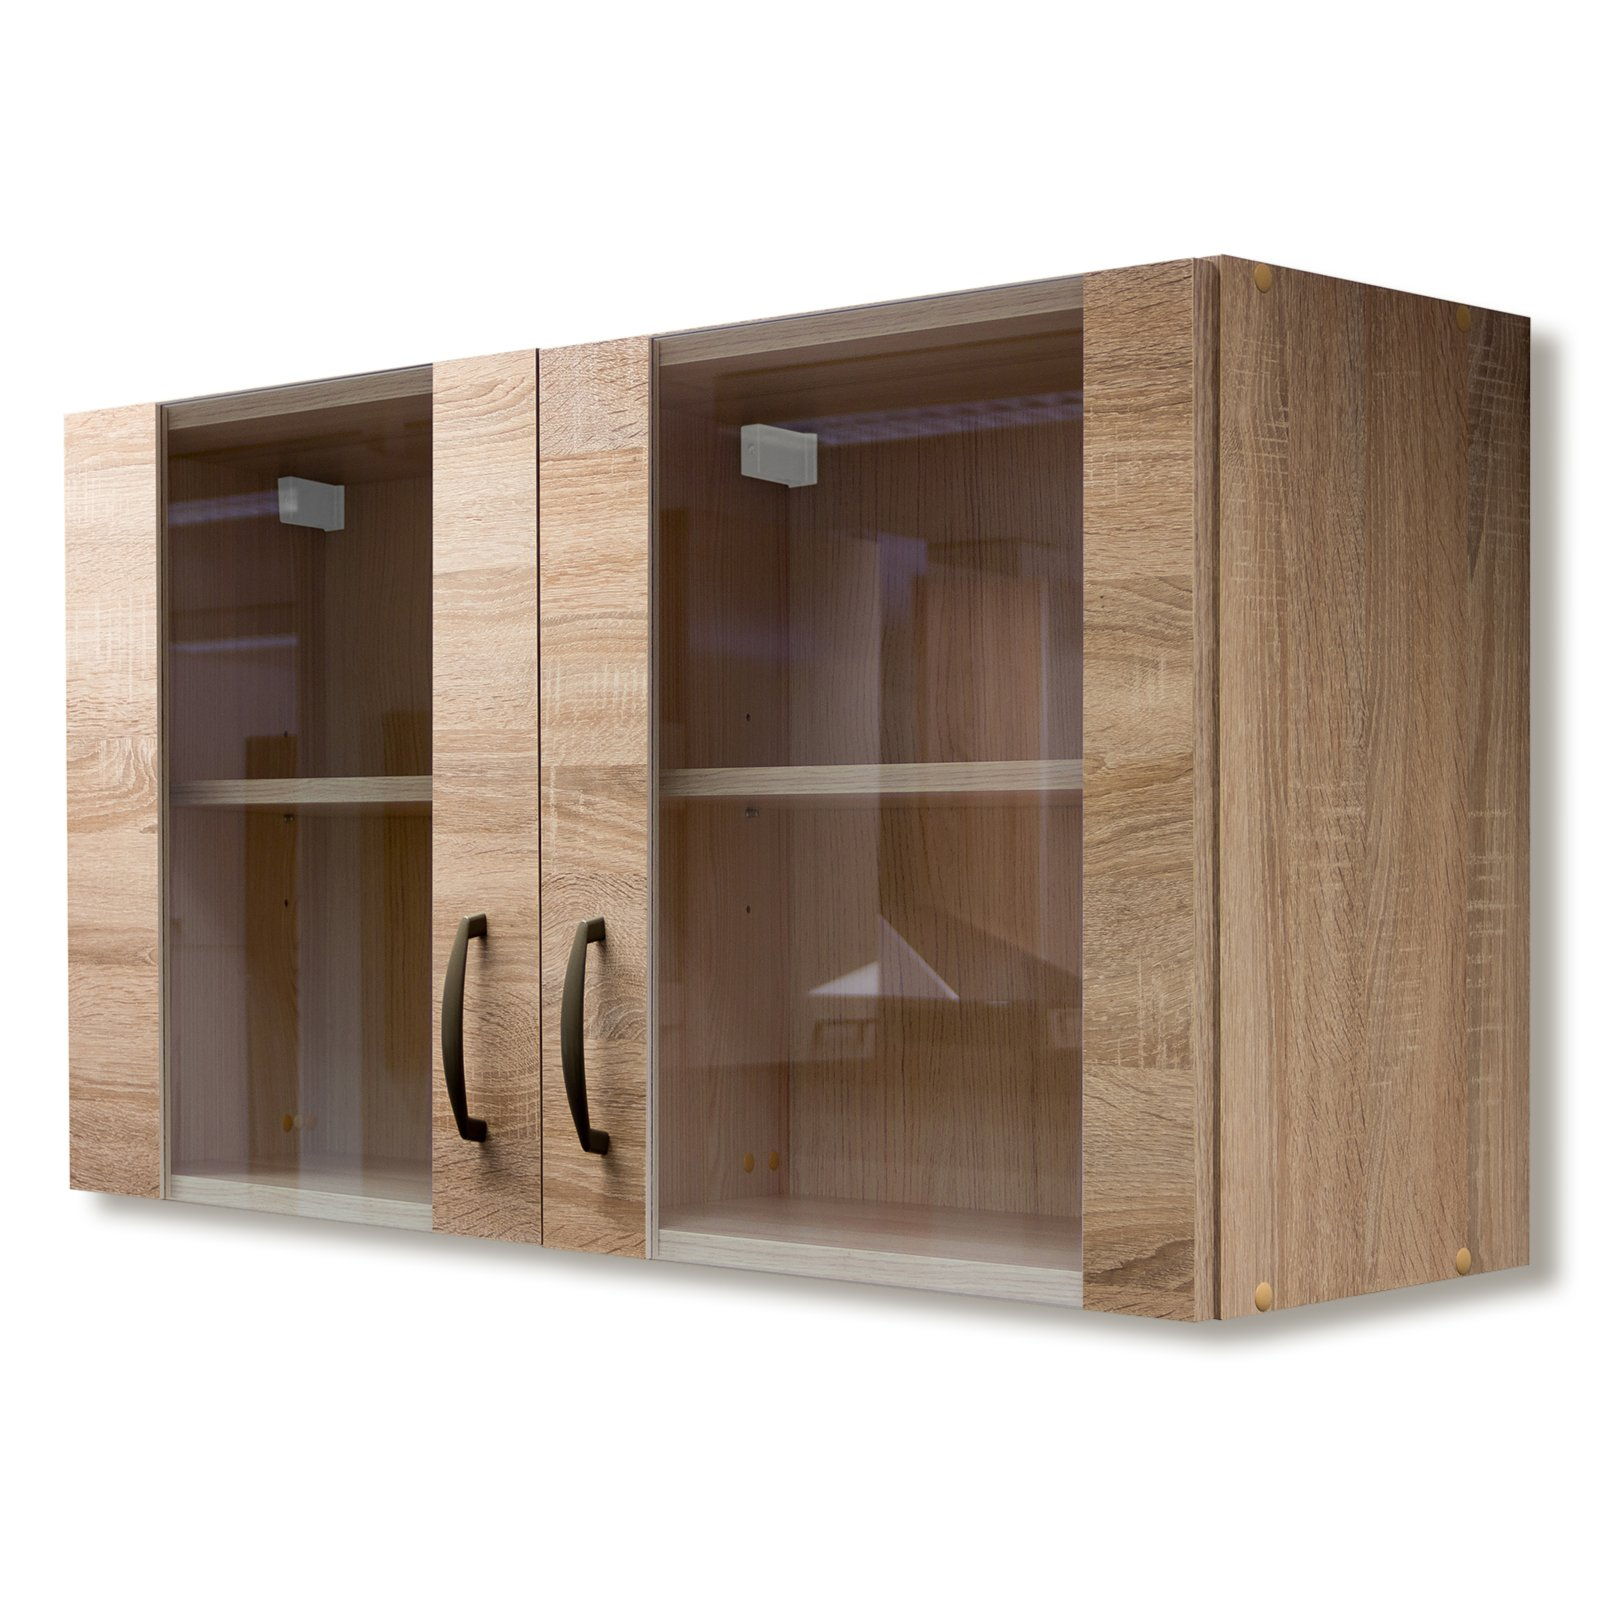 glas h ngeschrank oslo sonoma eiche 100 cm breit. Black Bedroom Furniture Sets. Home Design Ideas